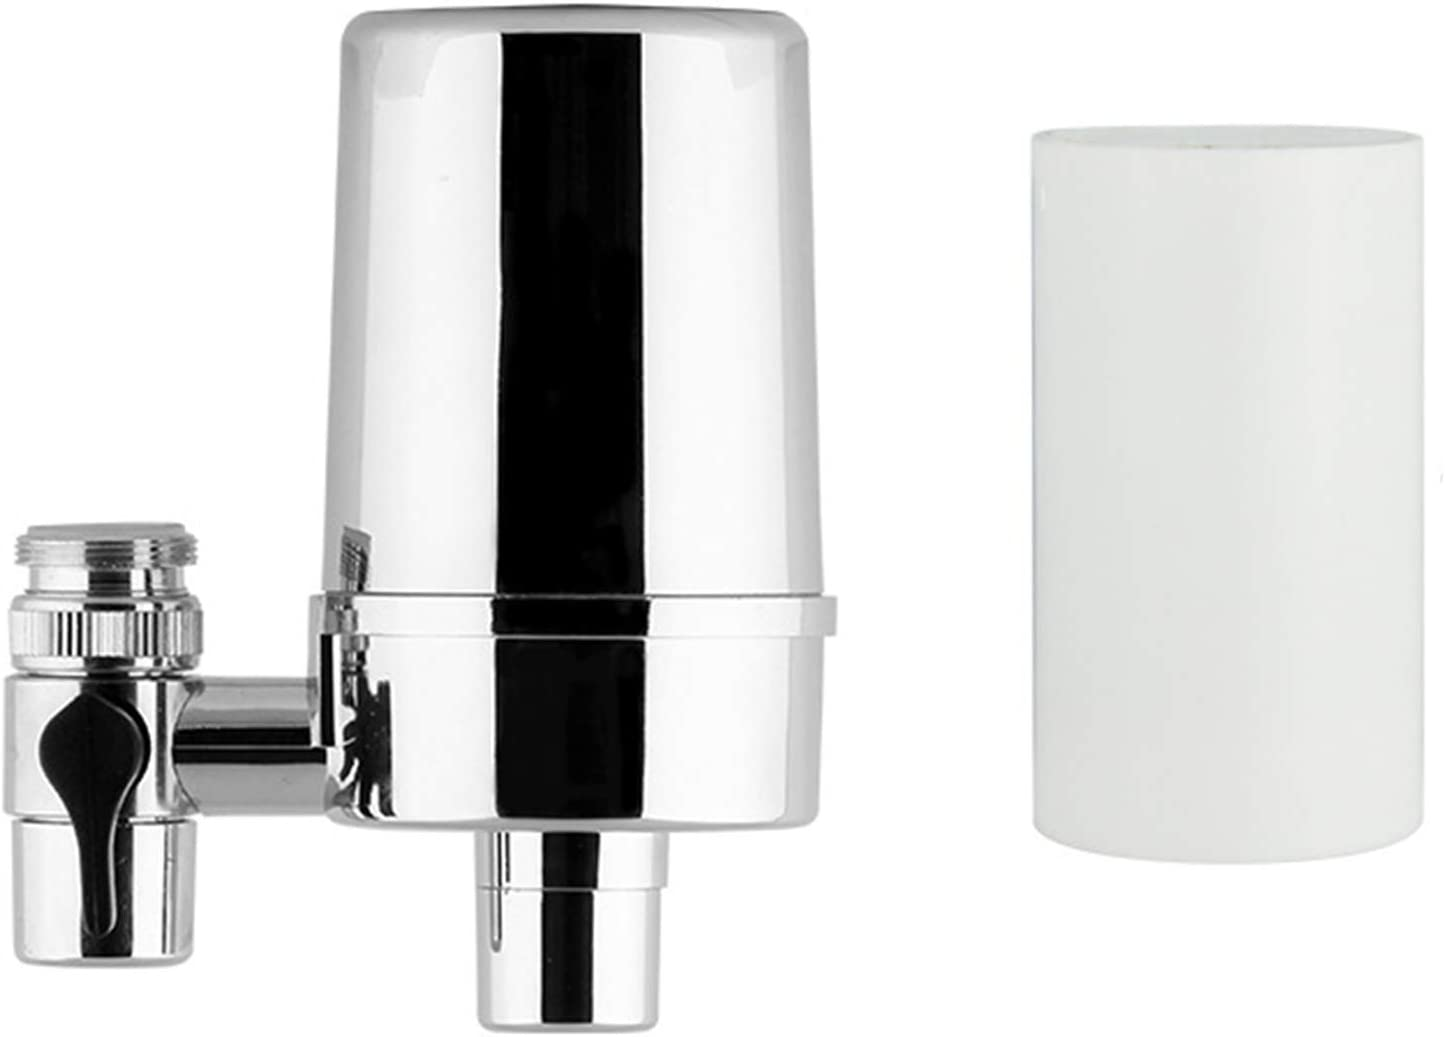 or RV Sink Monland 500 Gallons Long Life Faucet Water Filter for Contaminants Removal in Kitchen Bathroom